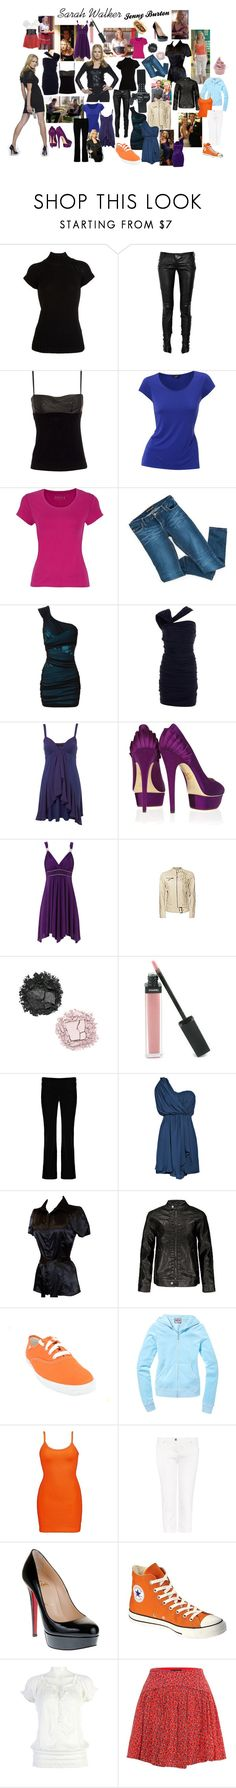 """Dress Like Sarah Walker!"" by nerdyginger66 ❤ liked on Polyvore featuring Levi's, Barneys New York, Balmain, Alexander Wang, Therapy, Hobbs, Holster, Precis Petite, Bardot and Jane Norman"